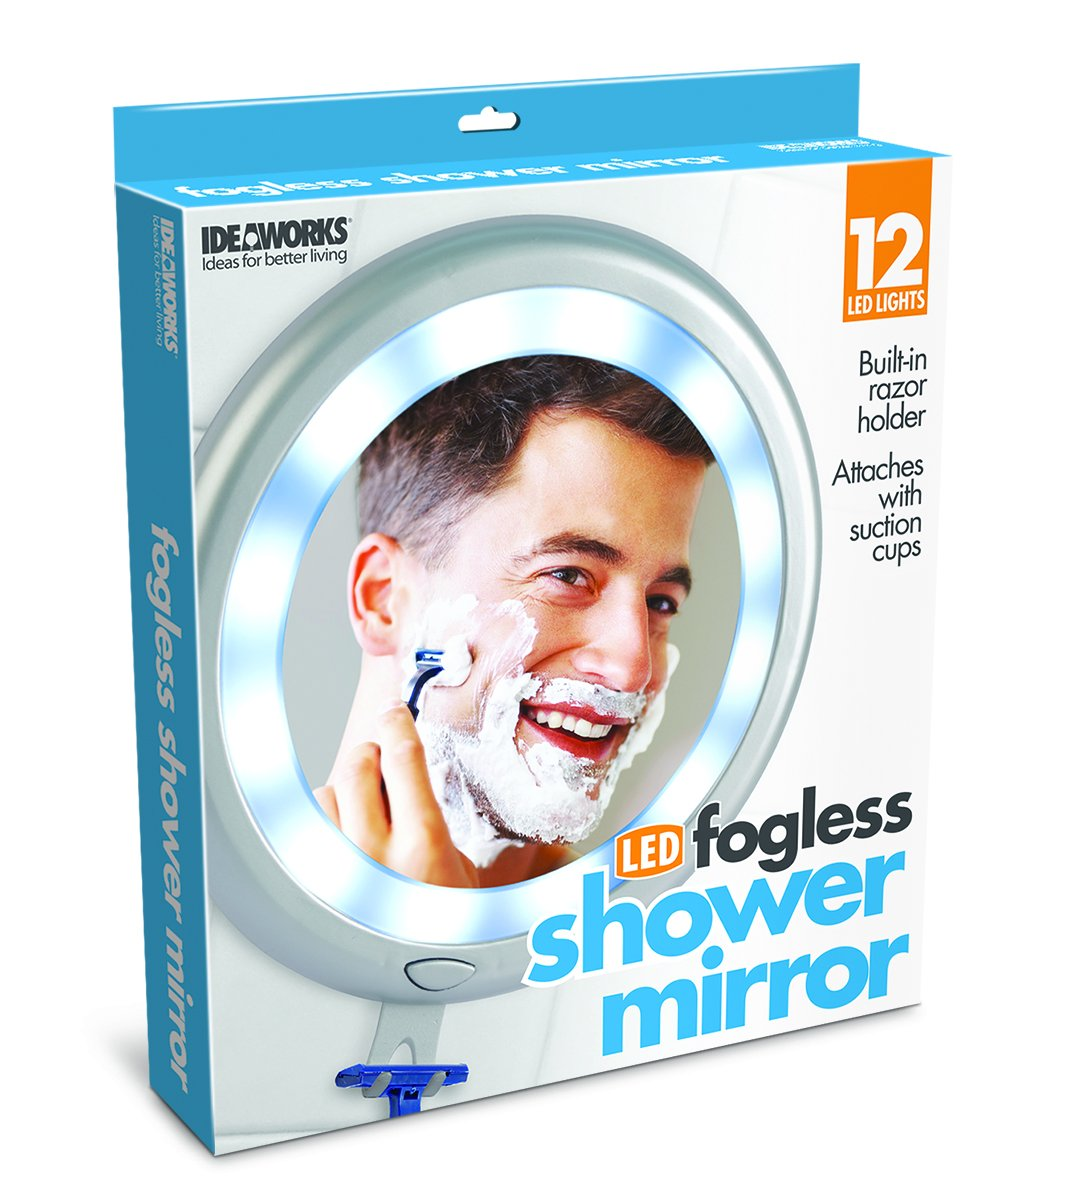 Ideaworks Fogless Shower Mirror, for Easy Shaving Mirrors Viewing No Fog Ever